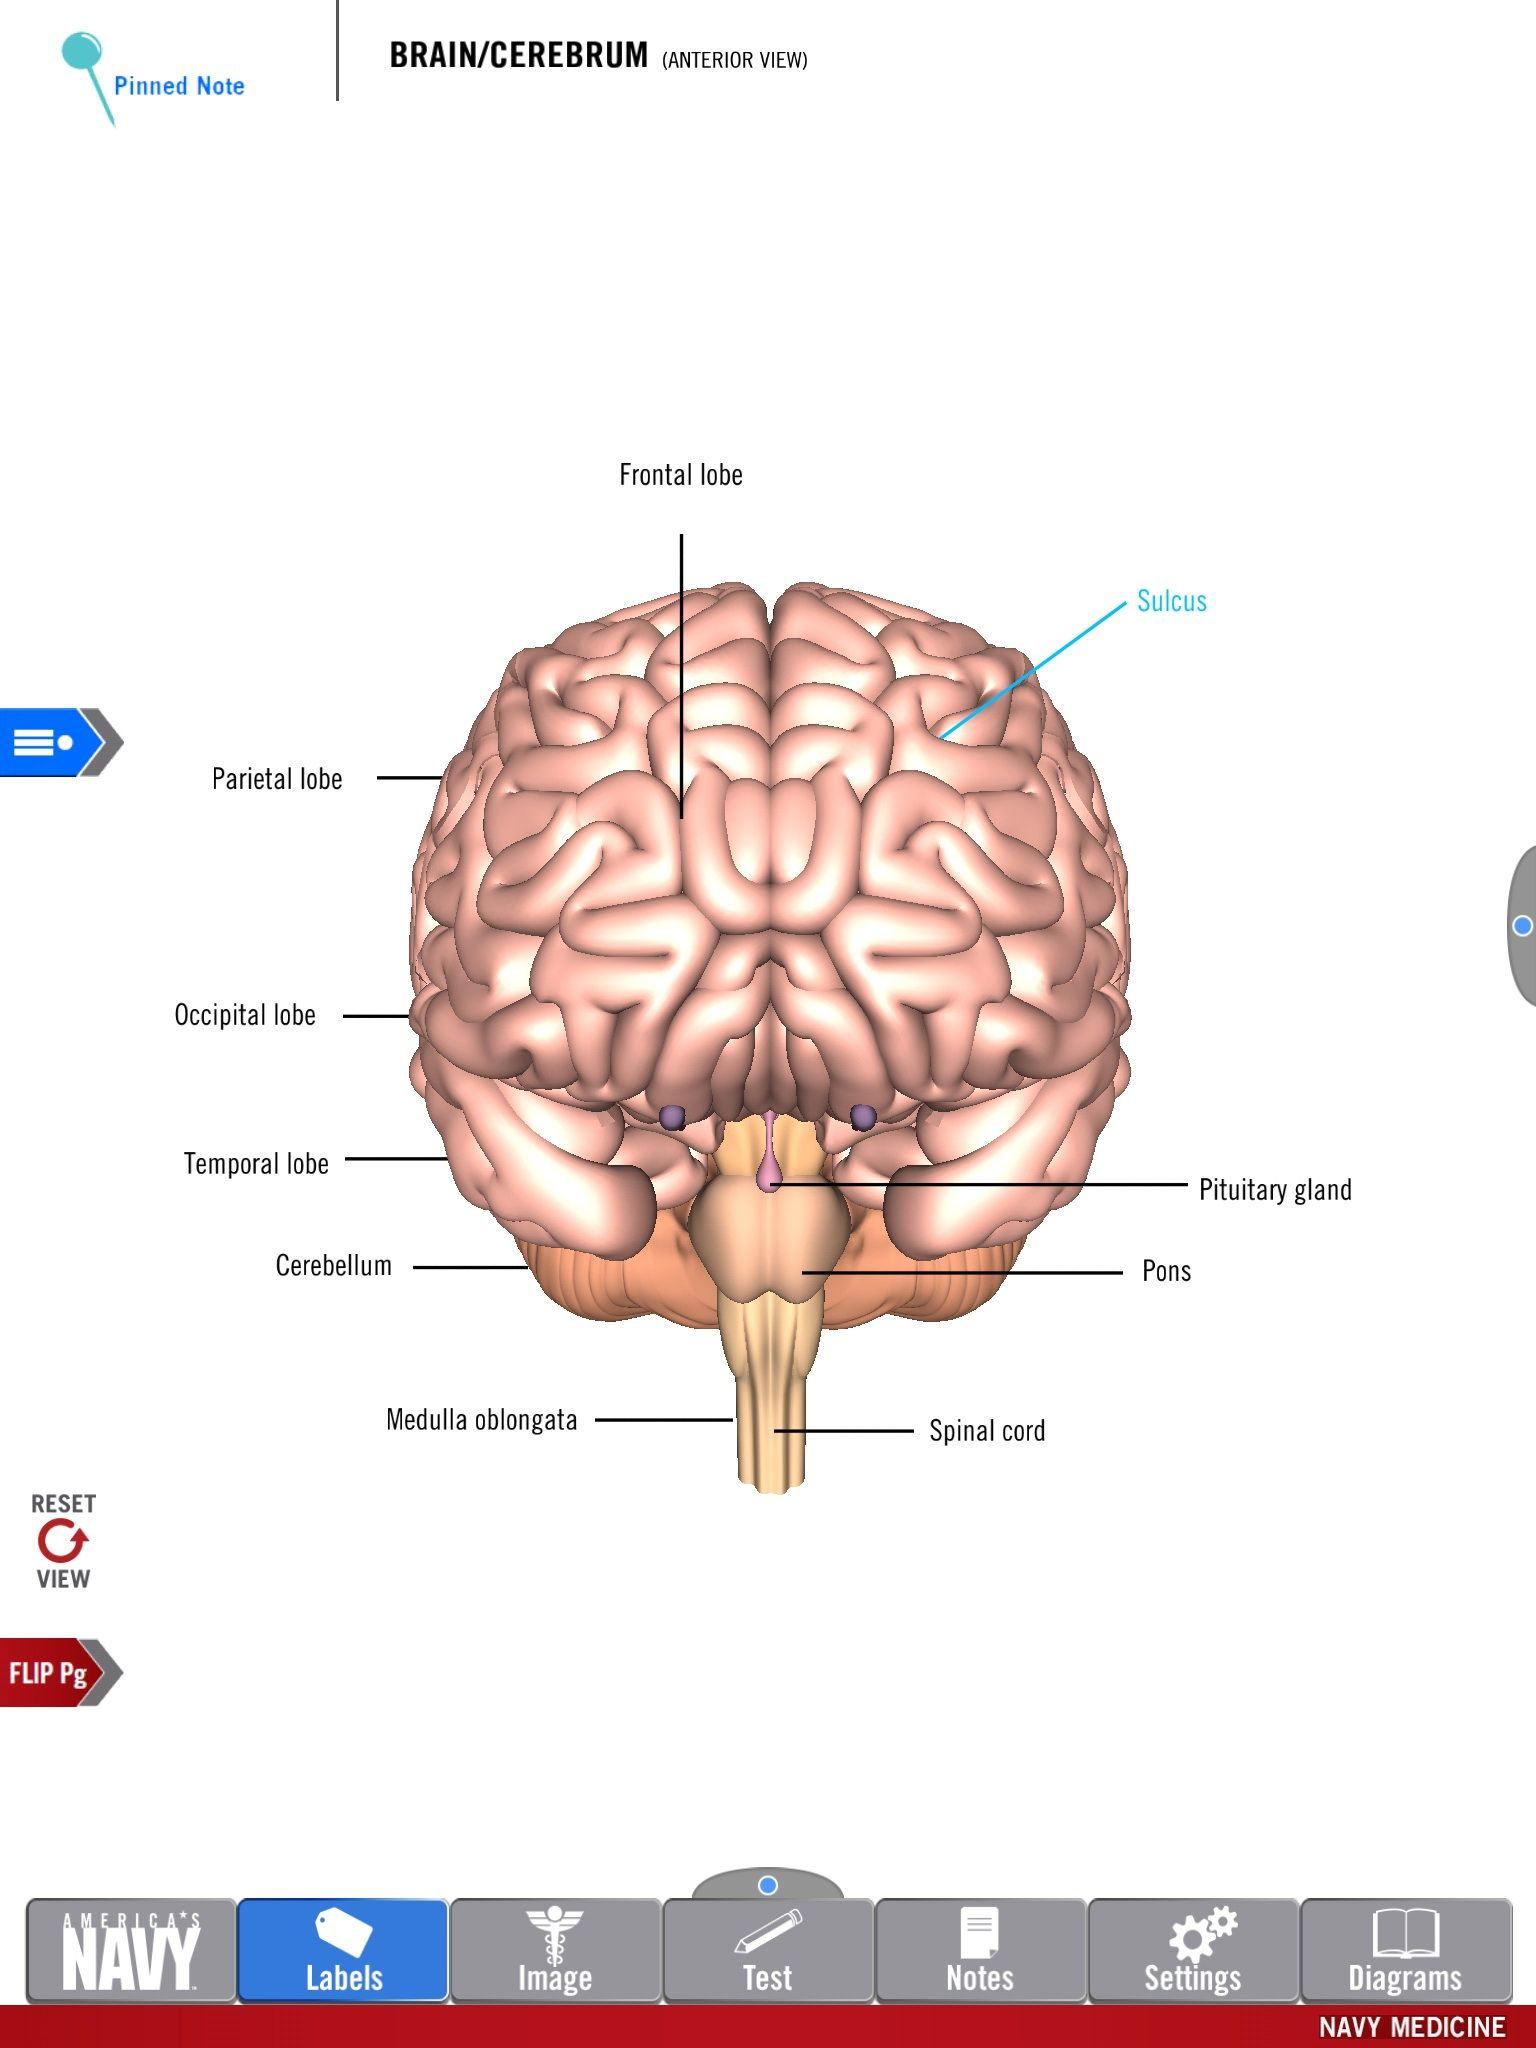 small resolution of diagram of the brain cerebrum from the free anatomy study guide app by america s navy includes high res 3 d diagrams navy usnavy americasnavy navy